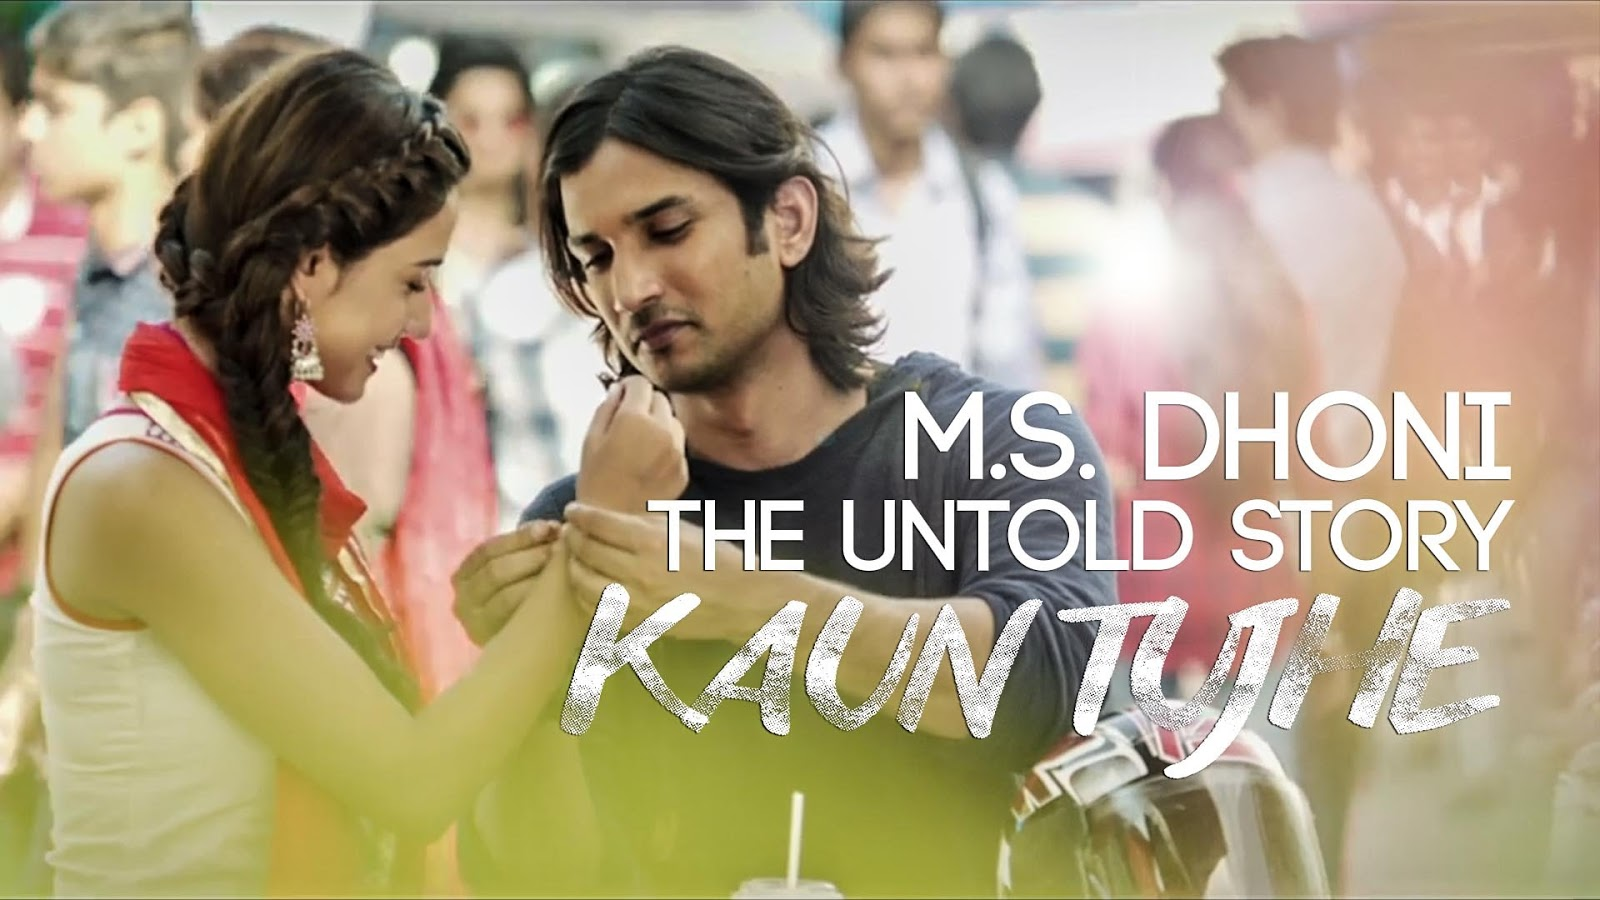 Kaun Tujhe Ms Dhoni The Untold Story Guitar Chords And